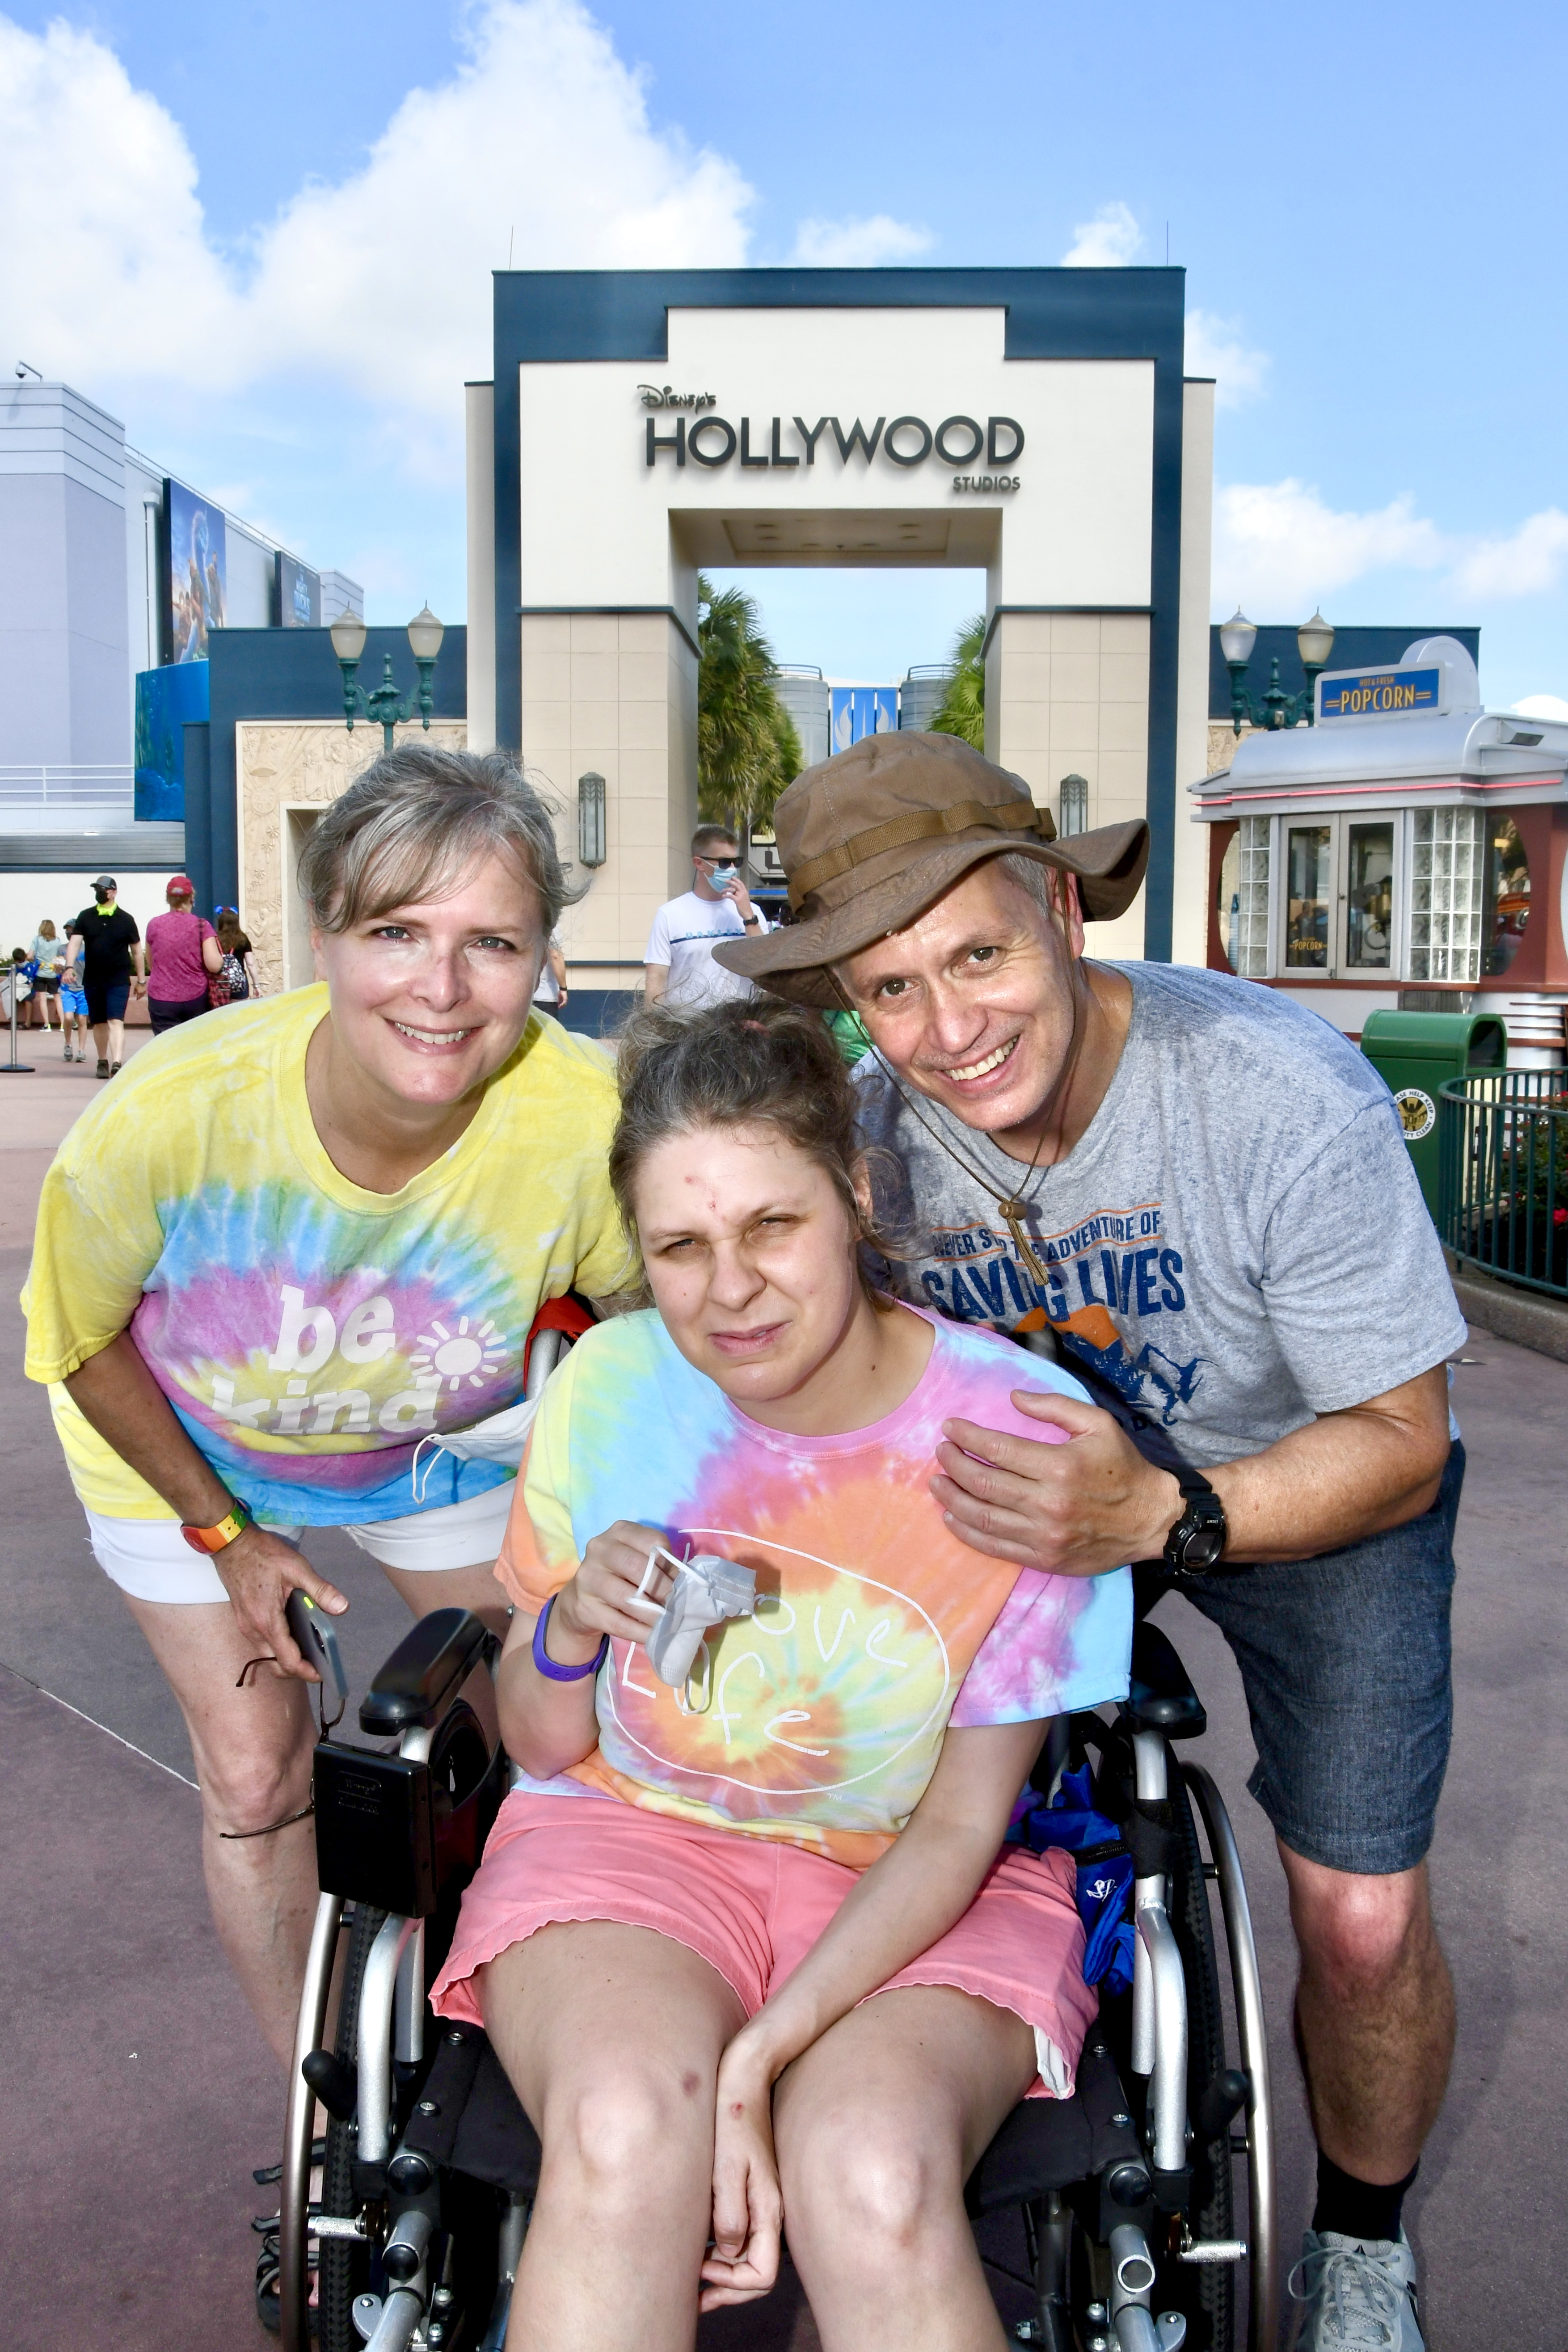 From Left to Right, Val, Jess, and Baddaddy. Jess is in her wheelchair, and Val and Baddaddy are leaning forward close to her. In the background behind them is the Hollywood Studios sign. The sky is mostly blue with a few white fluffy clouds.